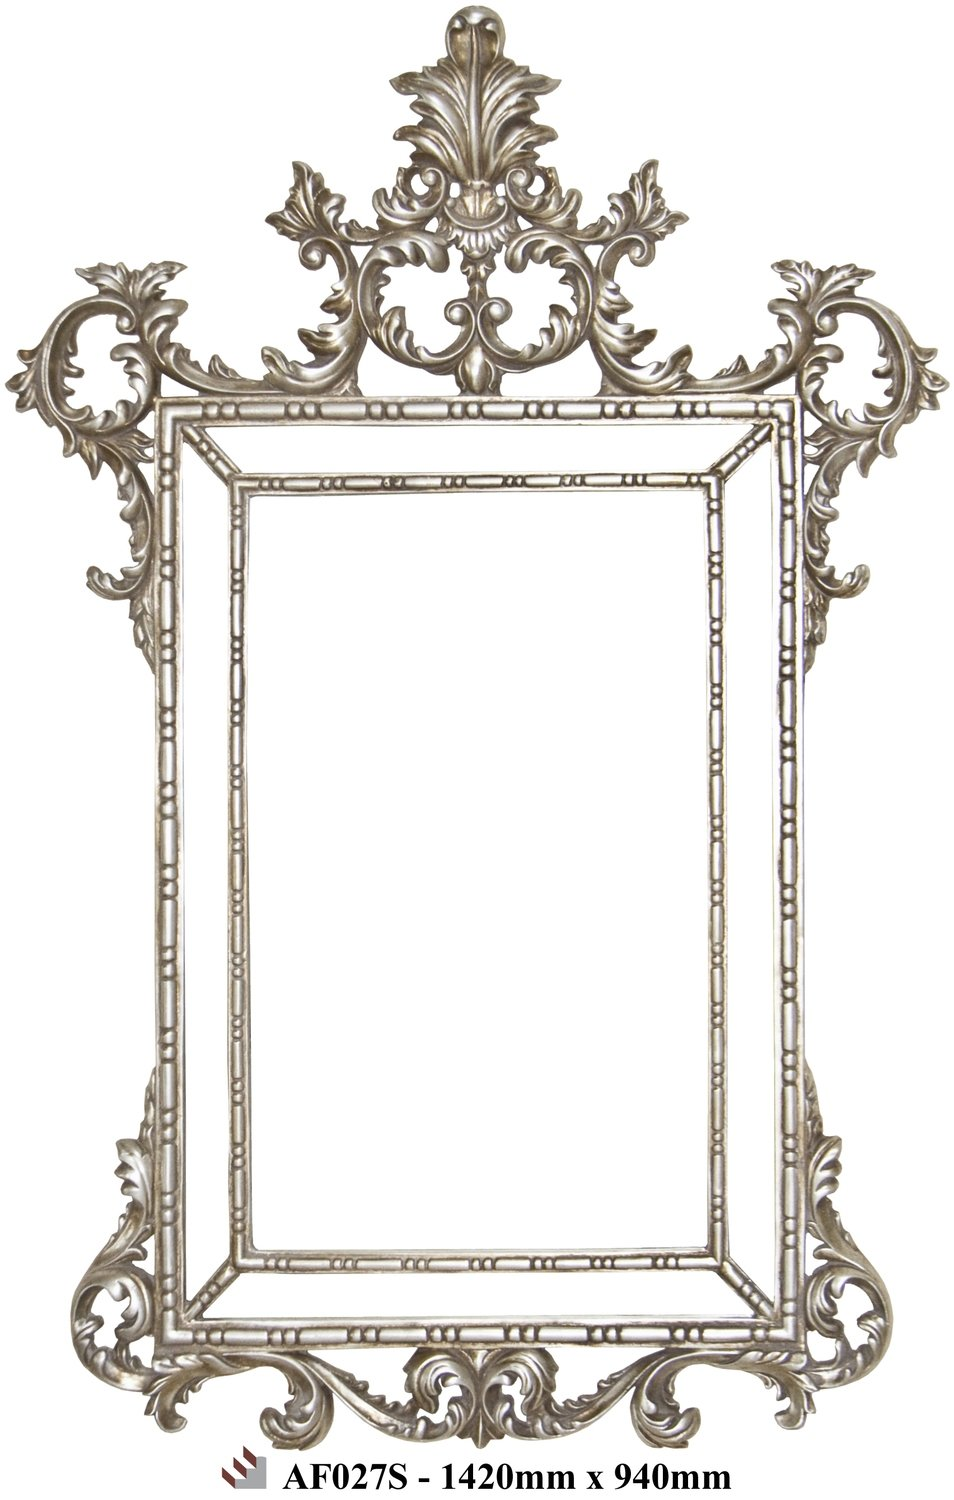 AF027 Silver ornate framed mirror